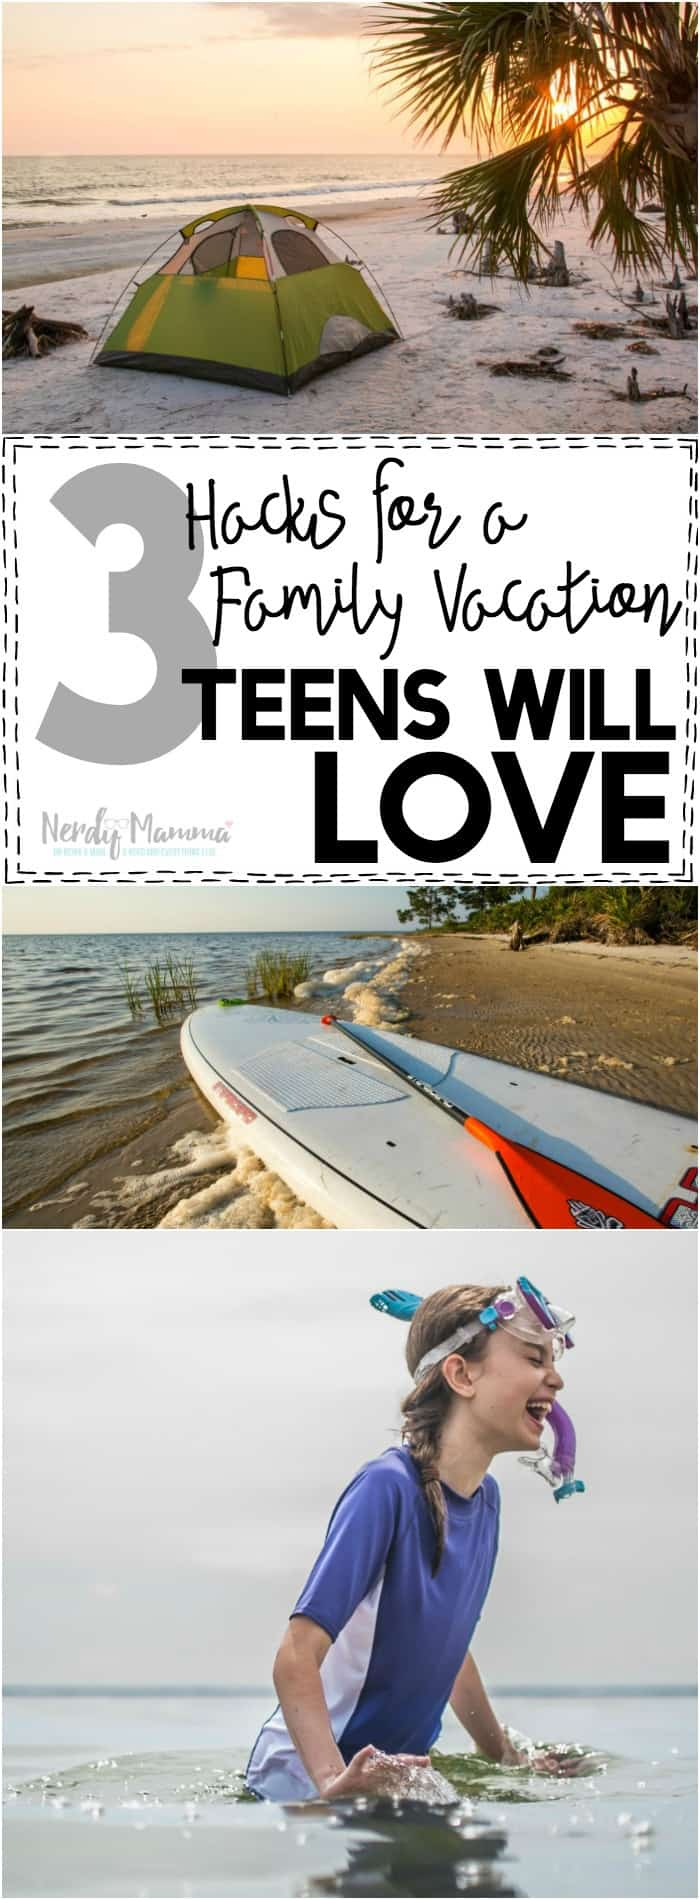 Oh, I LOVE these 3 hacks for a family vacation teens will like--so simple and SO PERFECT!